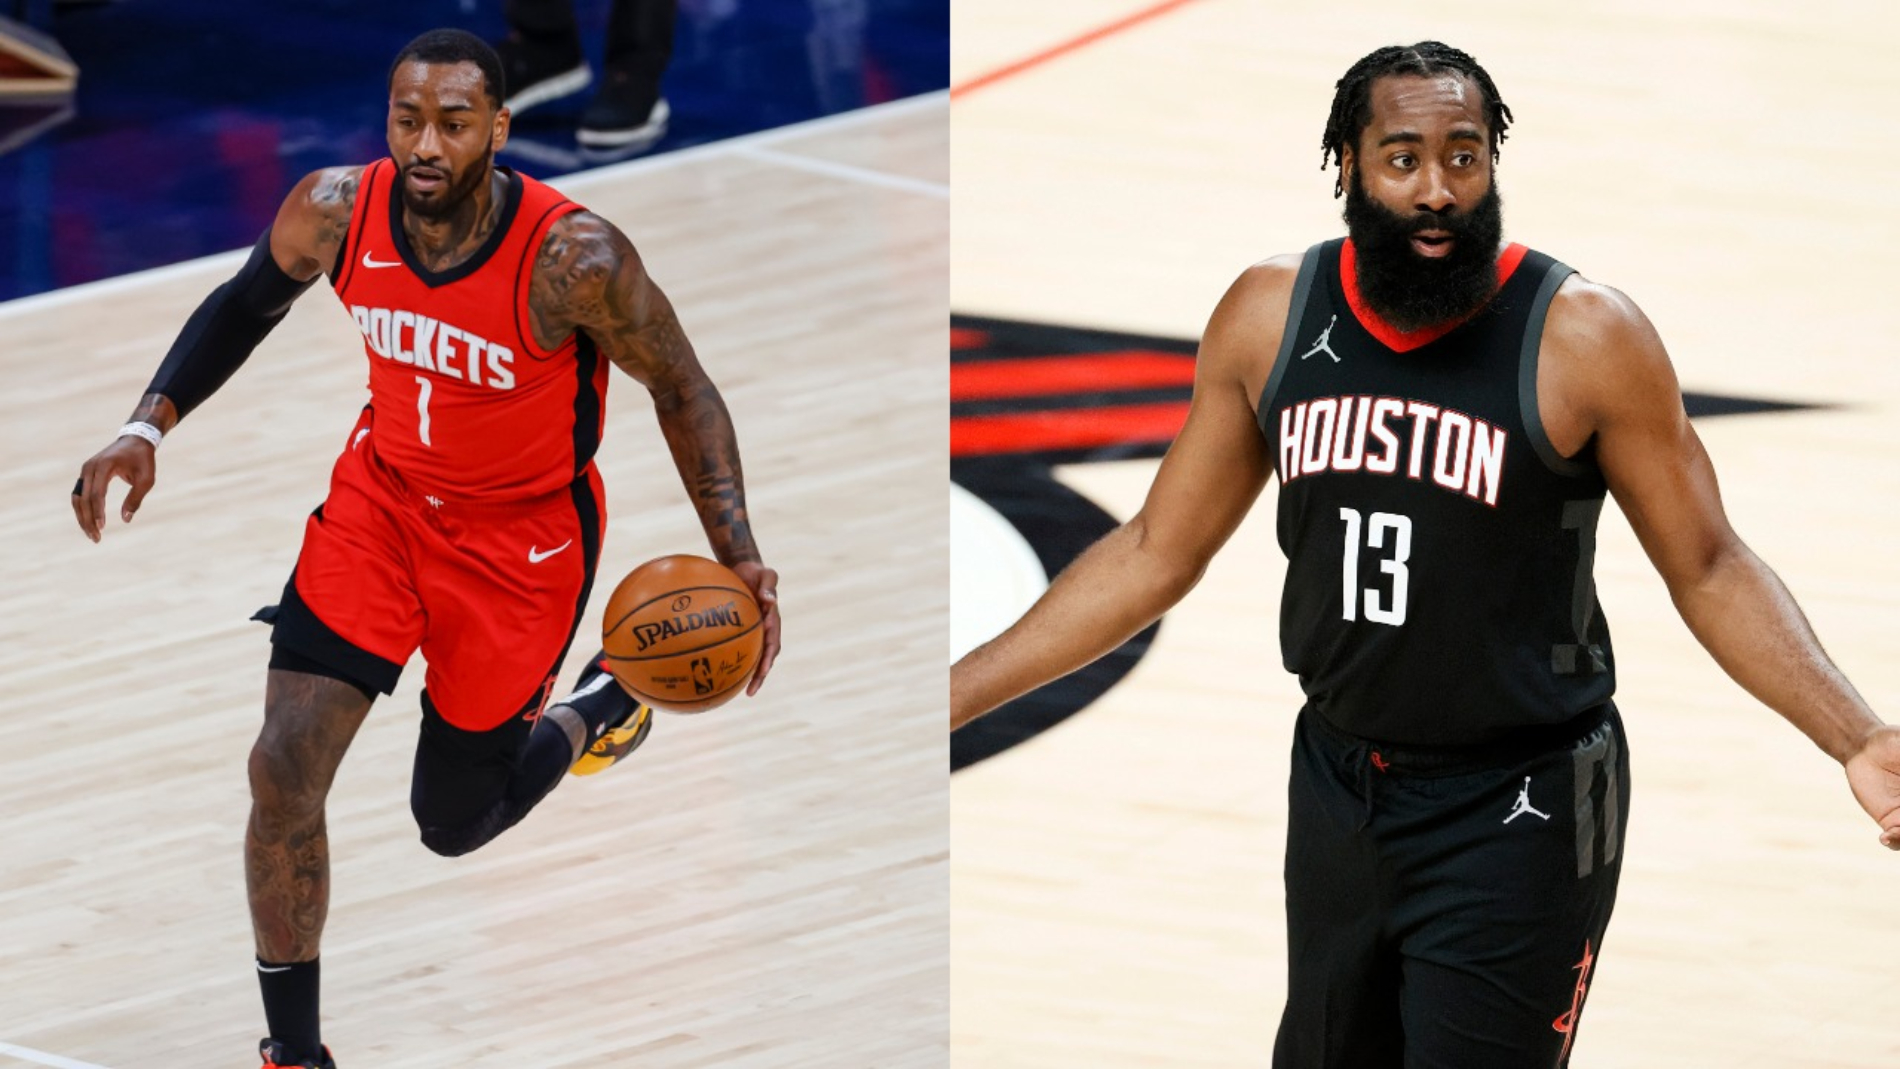 James Harden clearly doesn't want to be on the Houston Rockets. His new teammate John Wall seems to already be fed up with the drama, too.